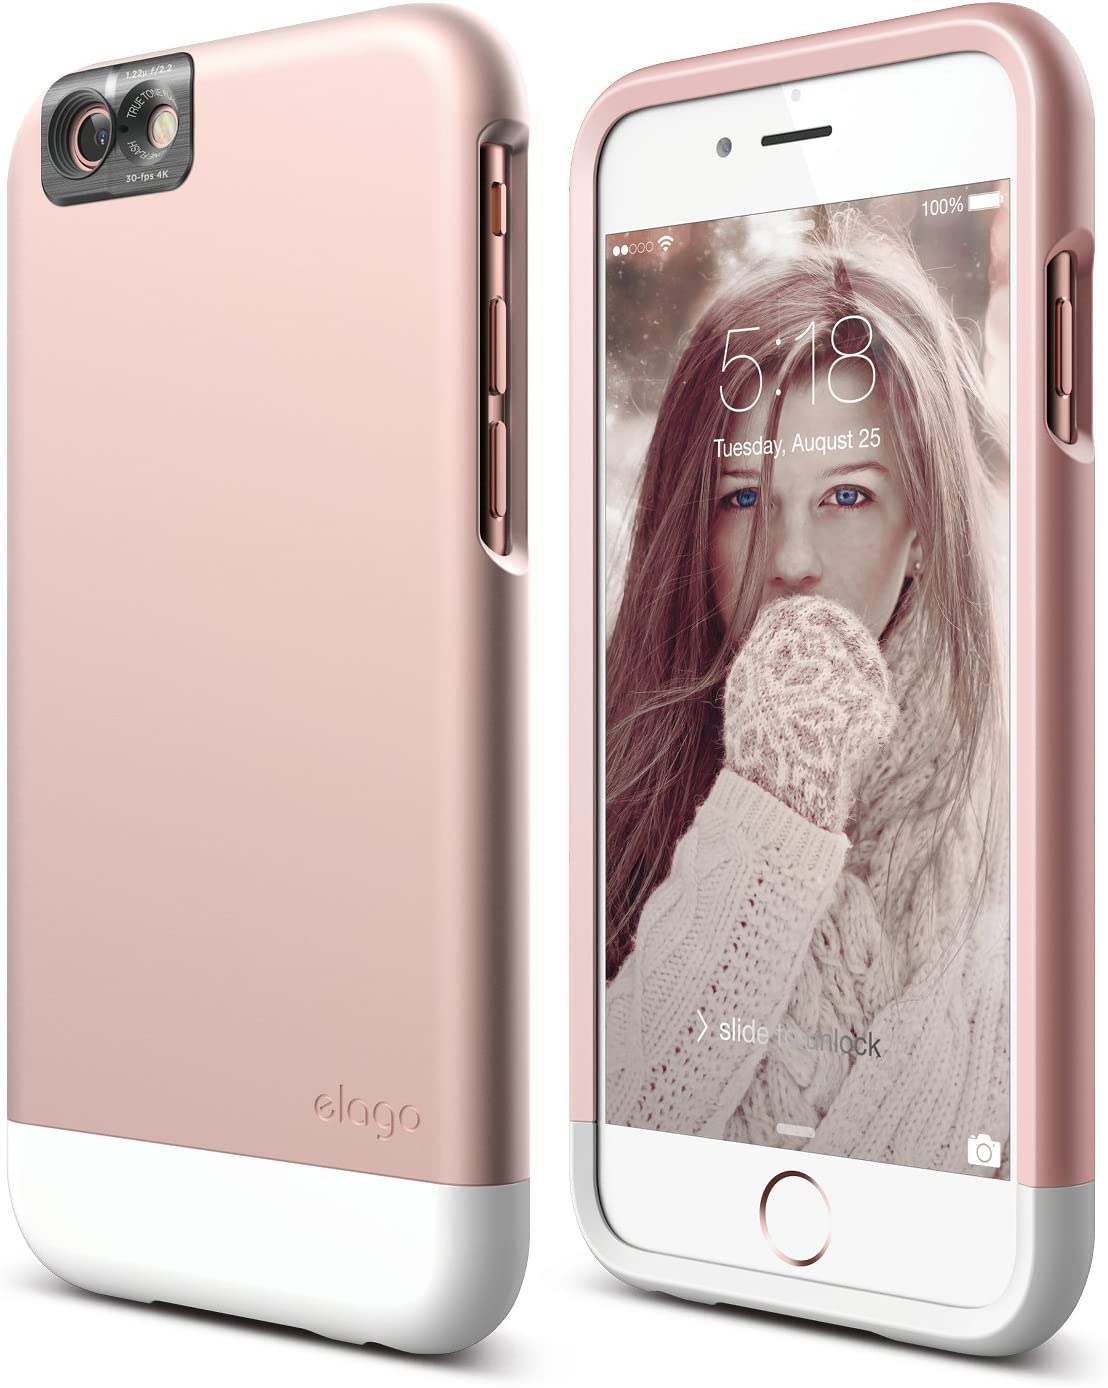 iPhone 6S Case, elago [Glide Cam][Rose Gold/White] - [Mix and Match][Premium Armor][True Fit] – for iPhone 6S Only